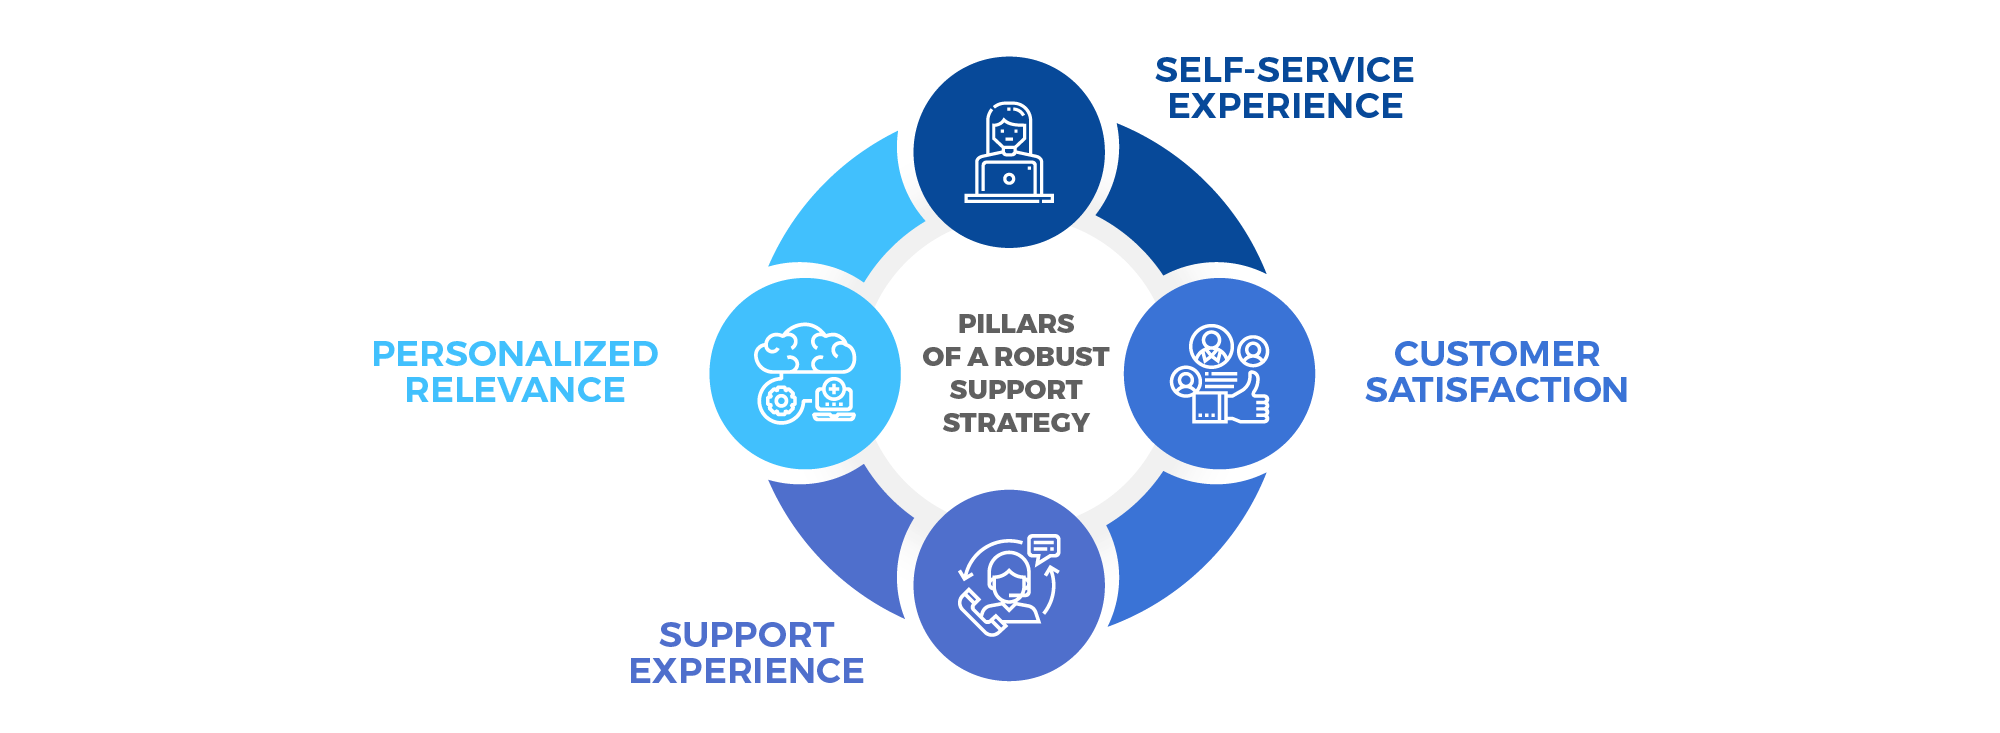 four pillars ― Self-Service Experience, Personalized Relevance, Support Efficiency, and Customer Satisfaction